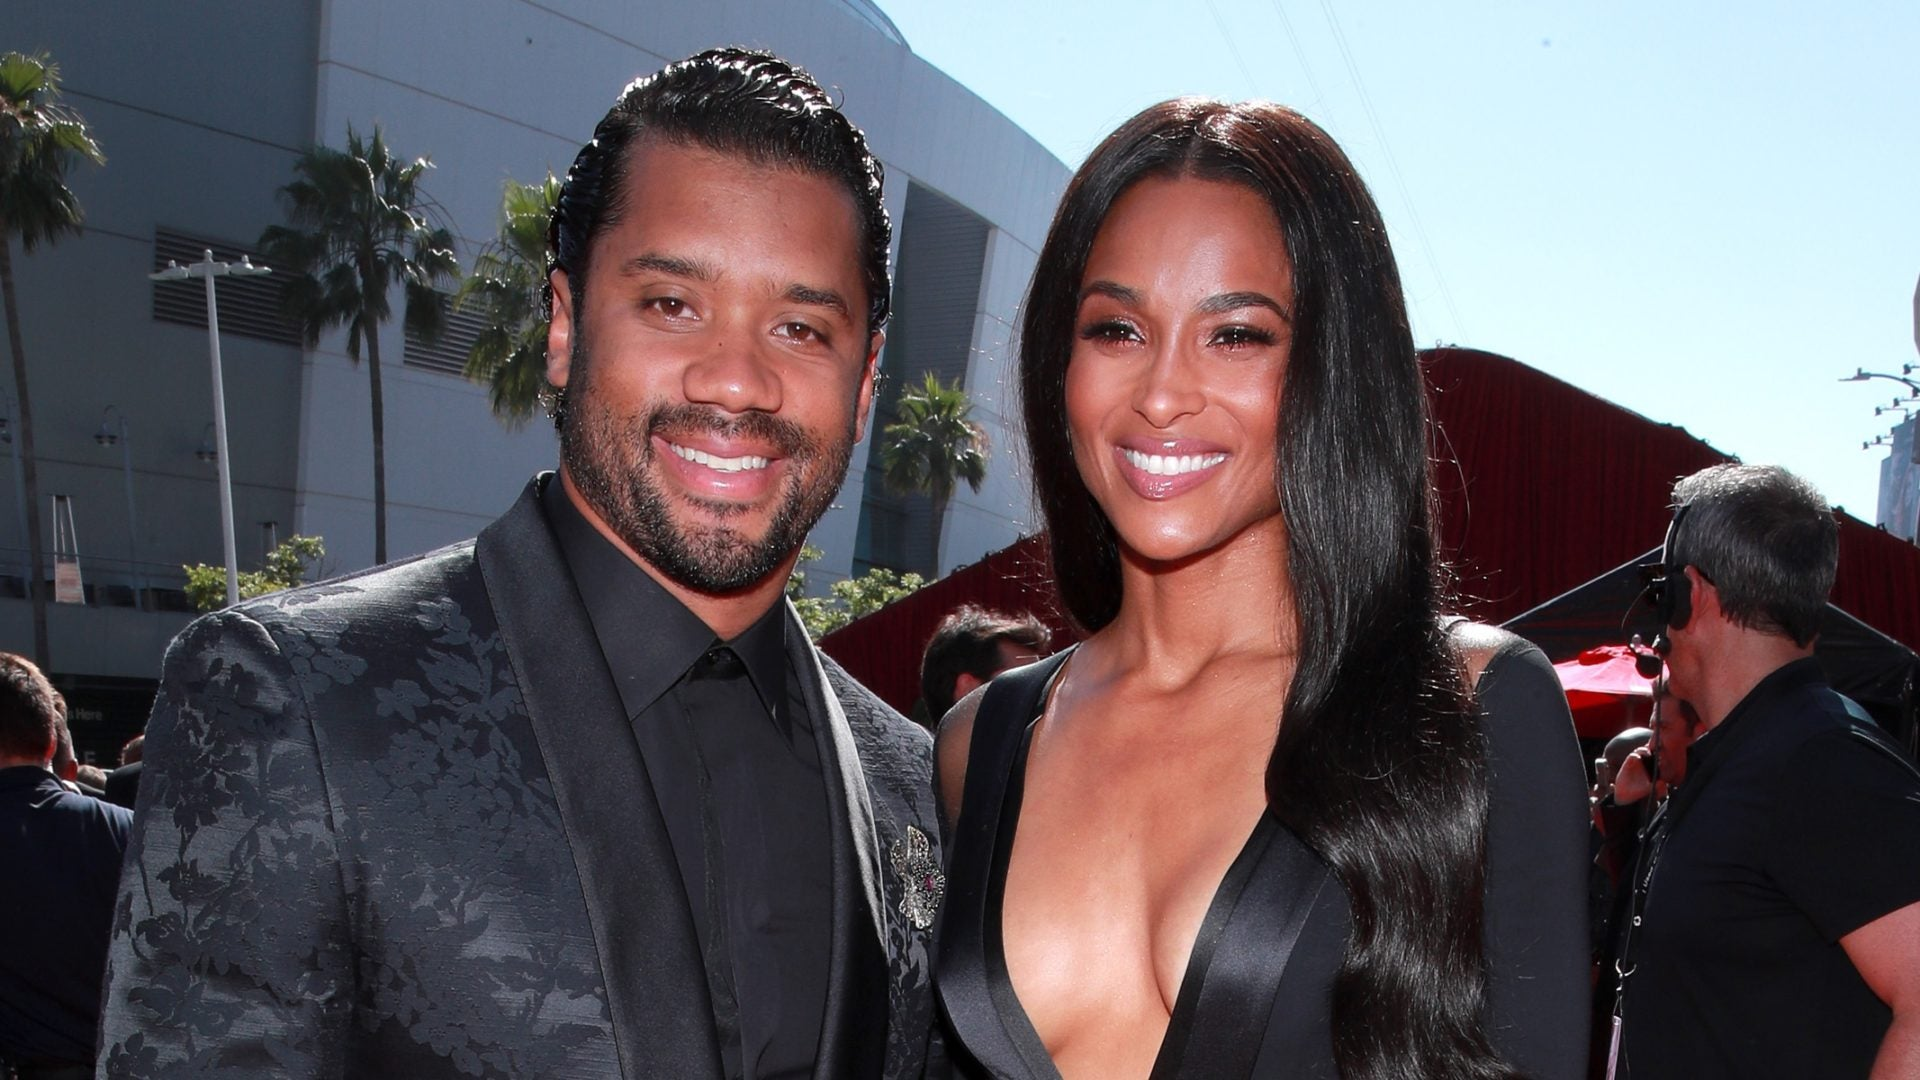 The Best Looks At The 2019 ESPY Awards